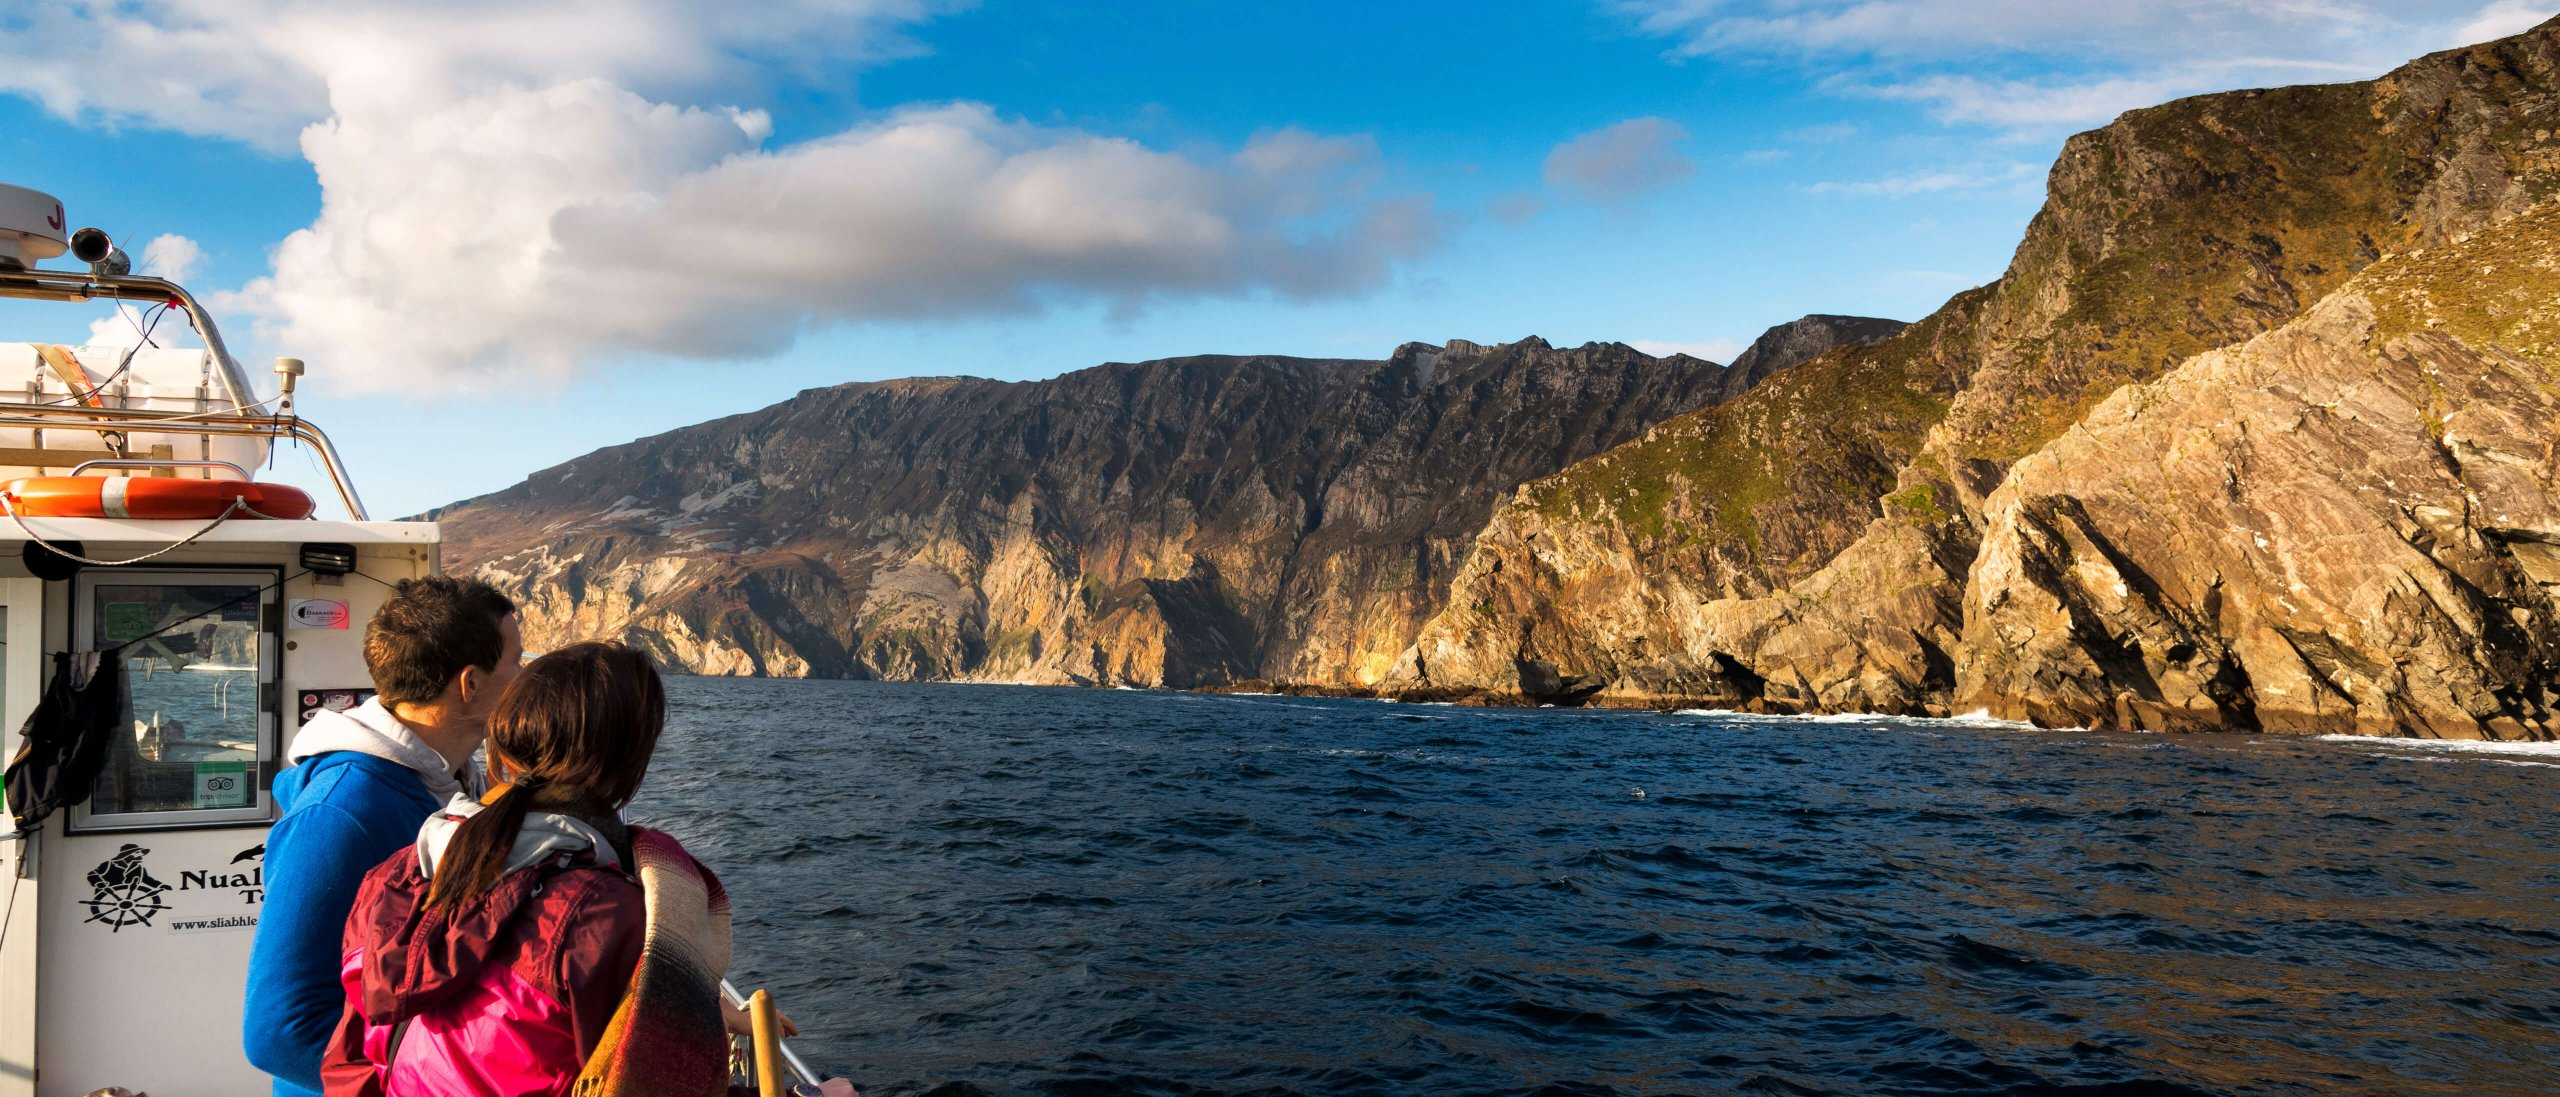 A man and a woman on a boat trip underneath the Slieve League cliffs in the sunshine